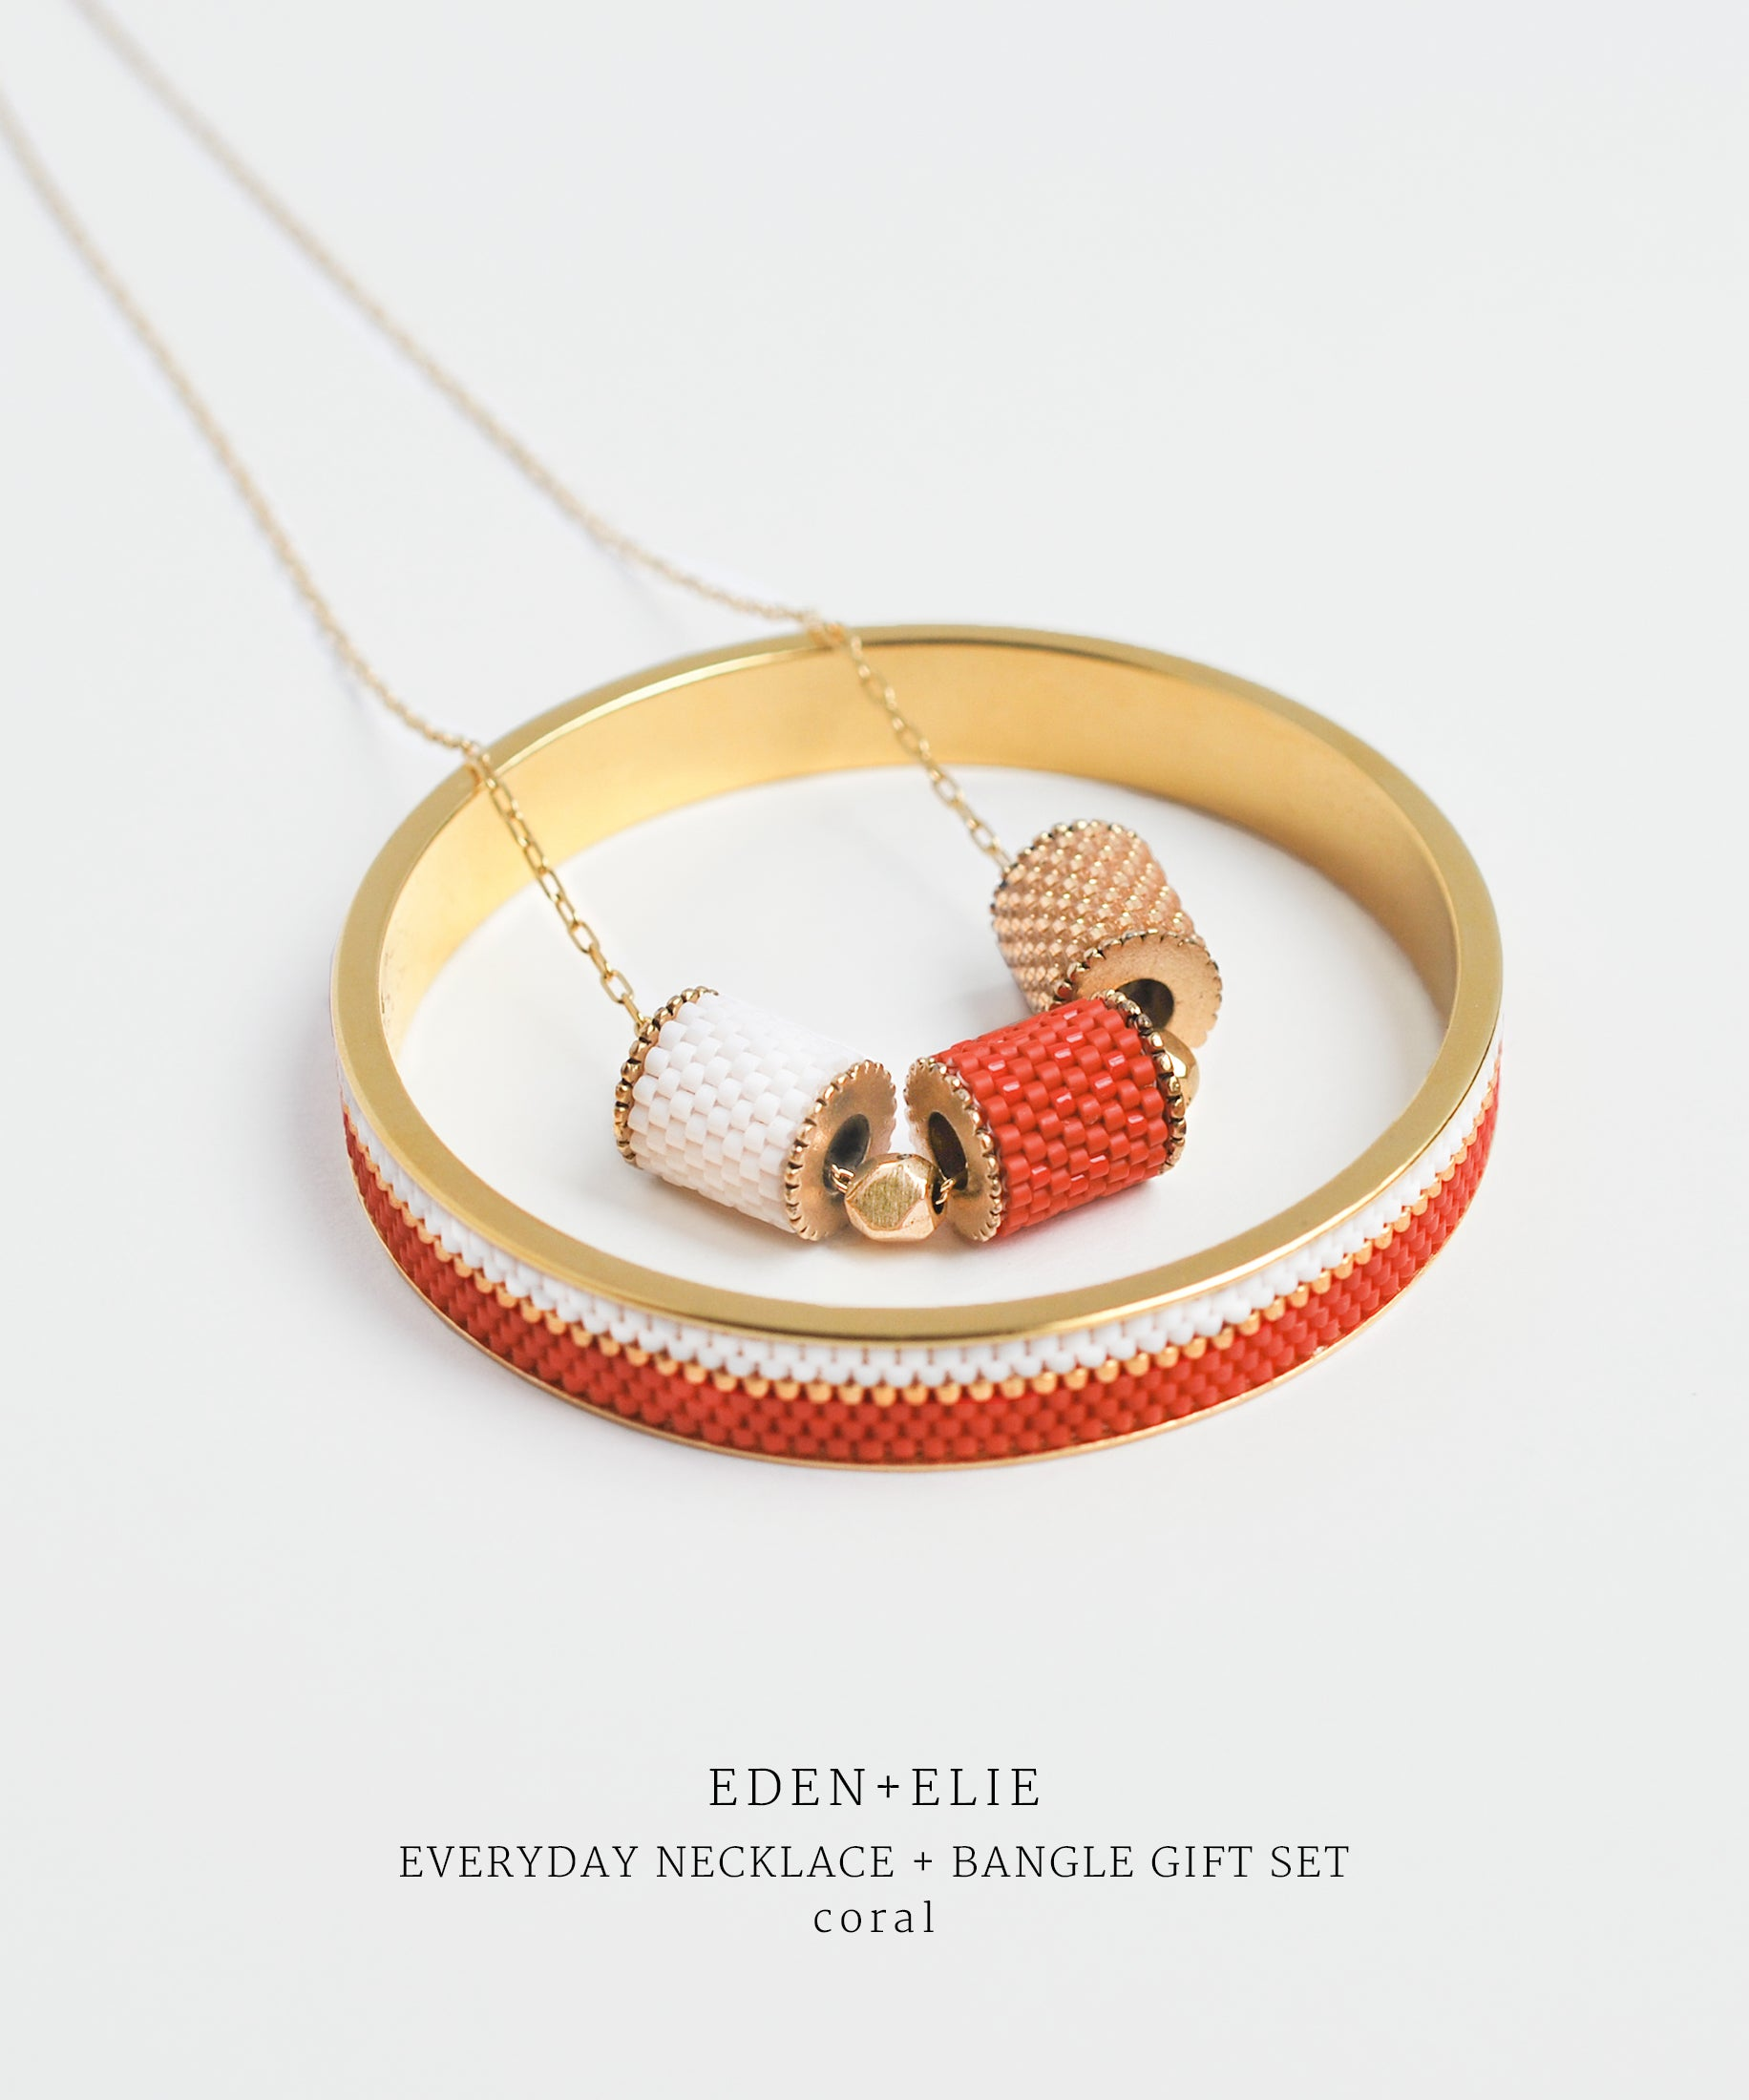 EDEN + ELIE Everyday adjustable length necklace + bangle set - coral red